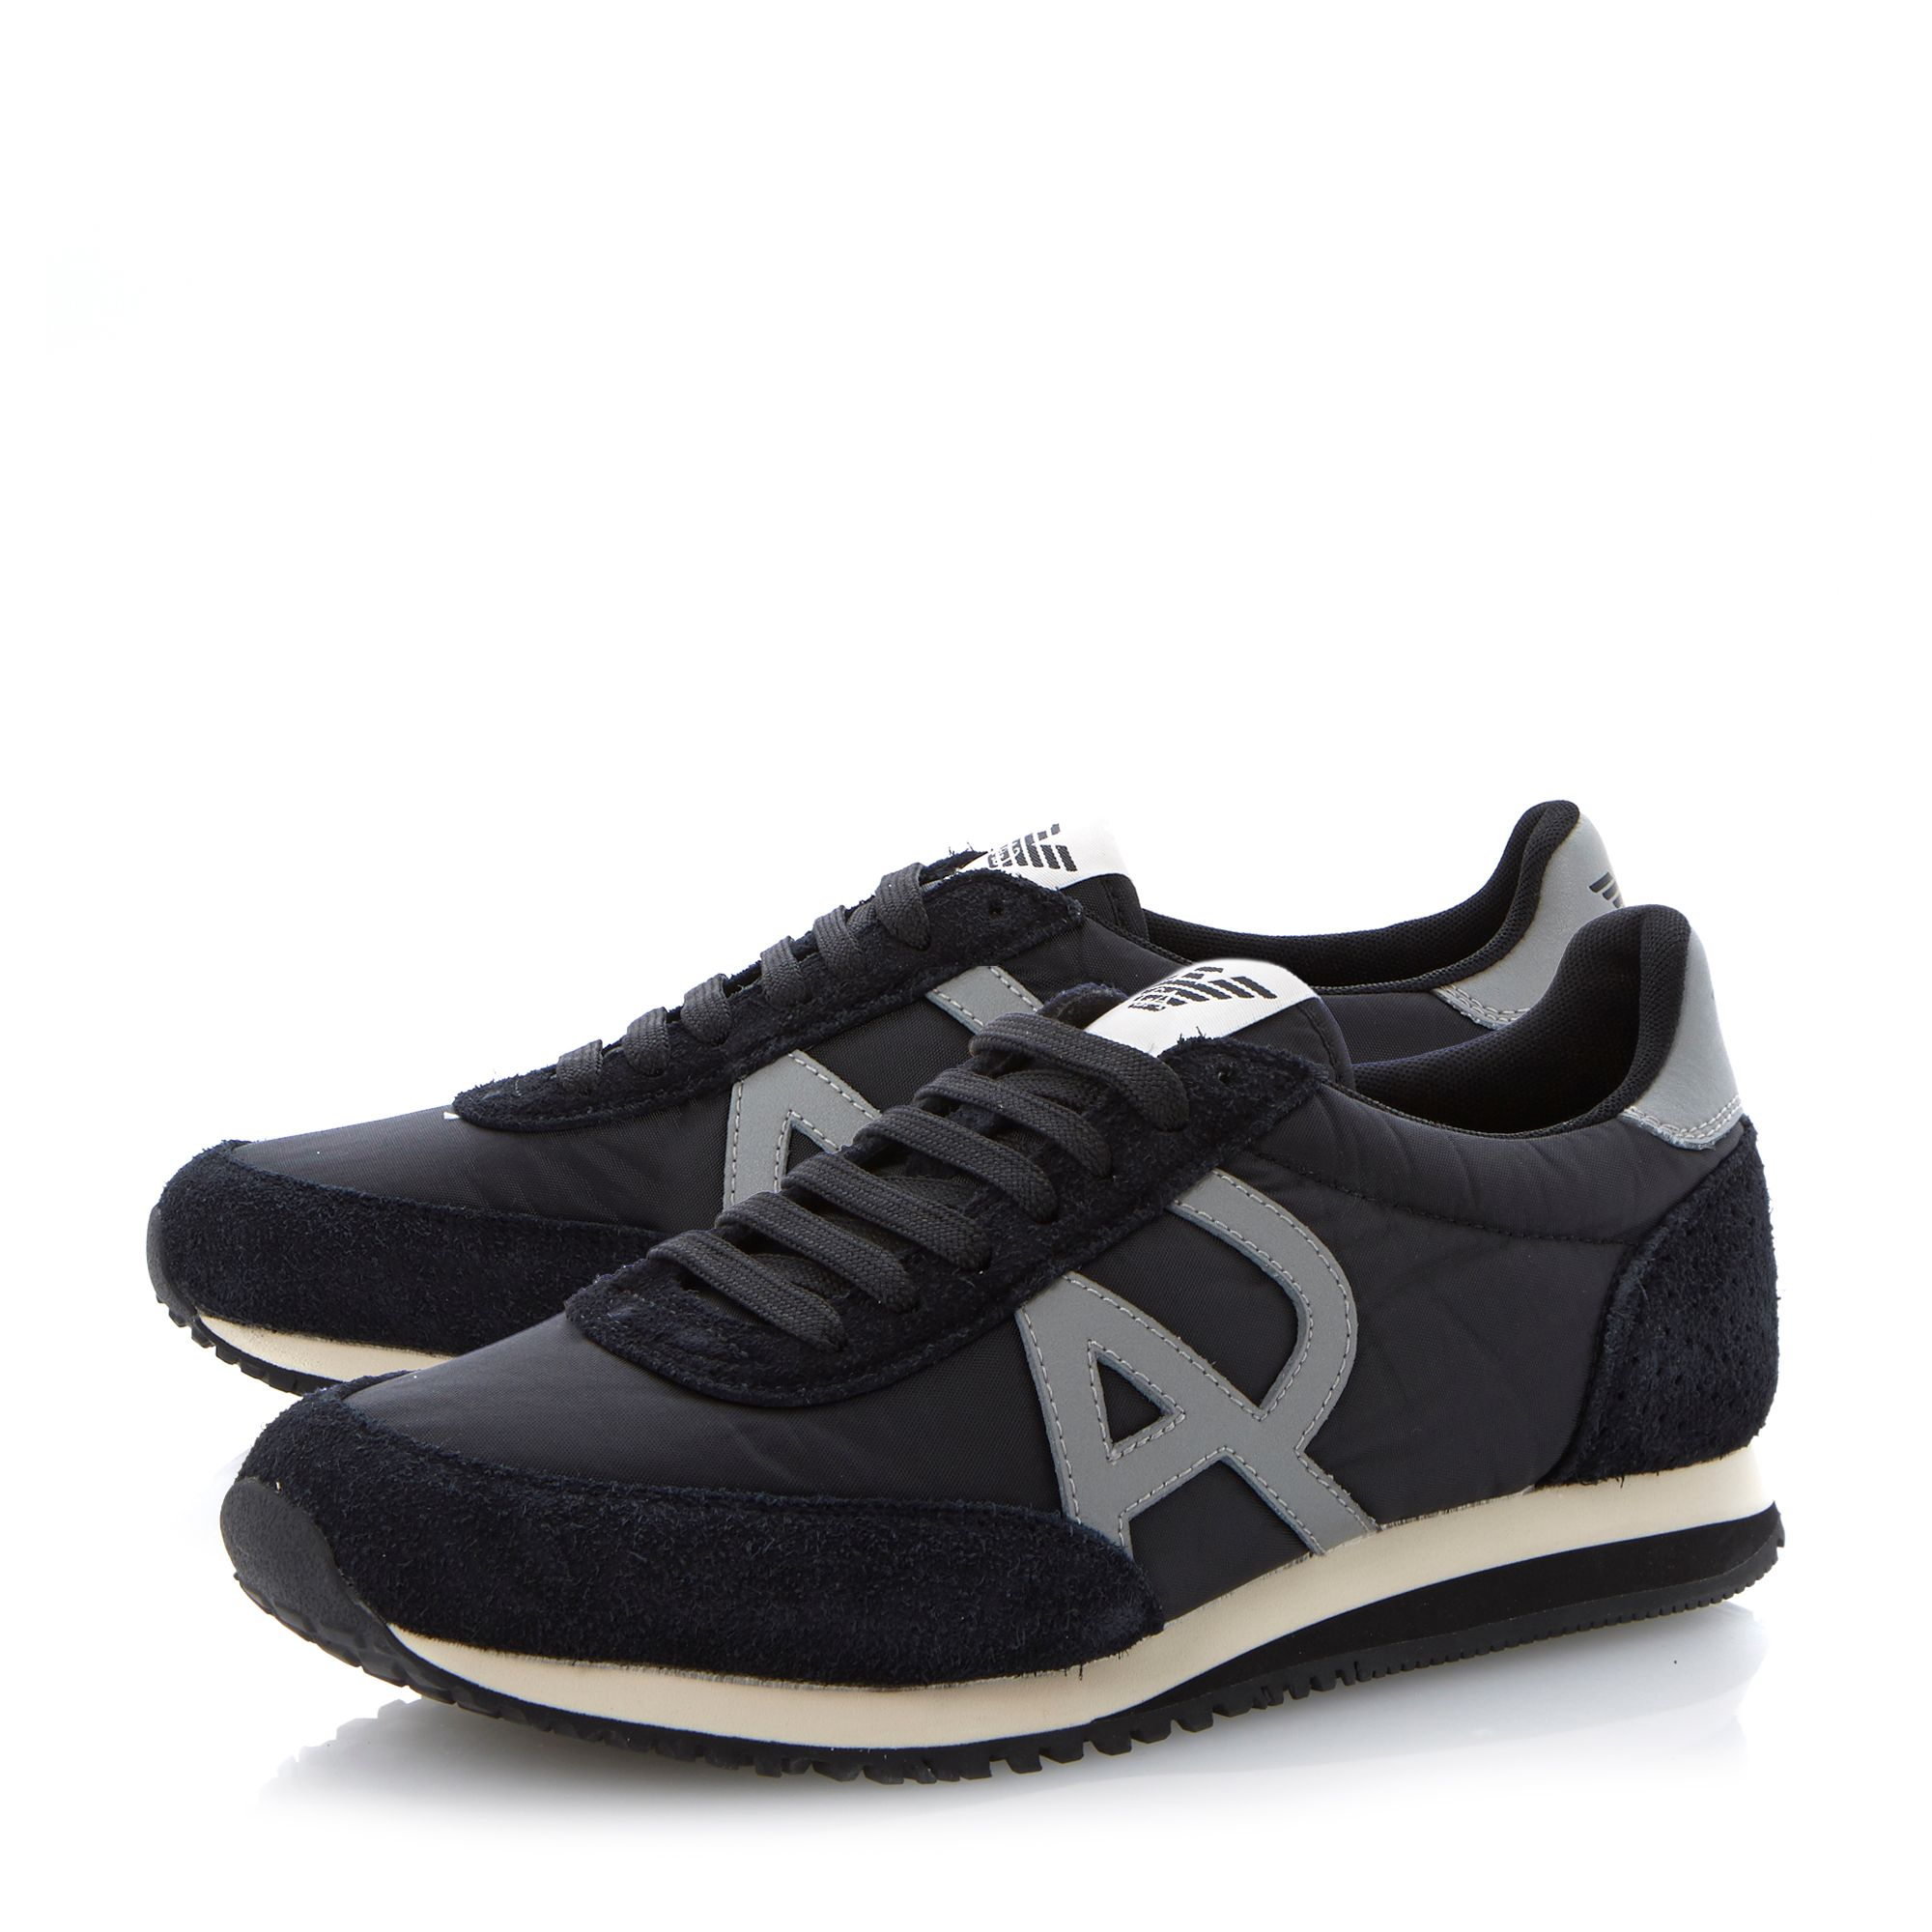 Combo runner lace up trainers